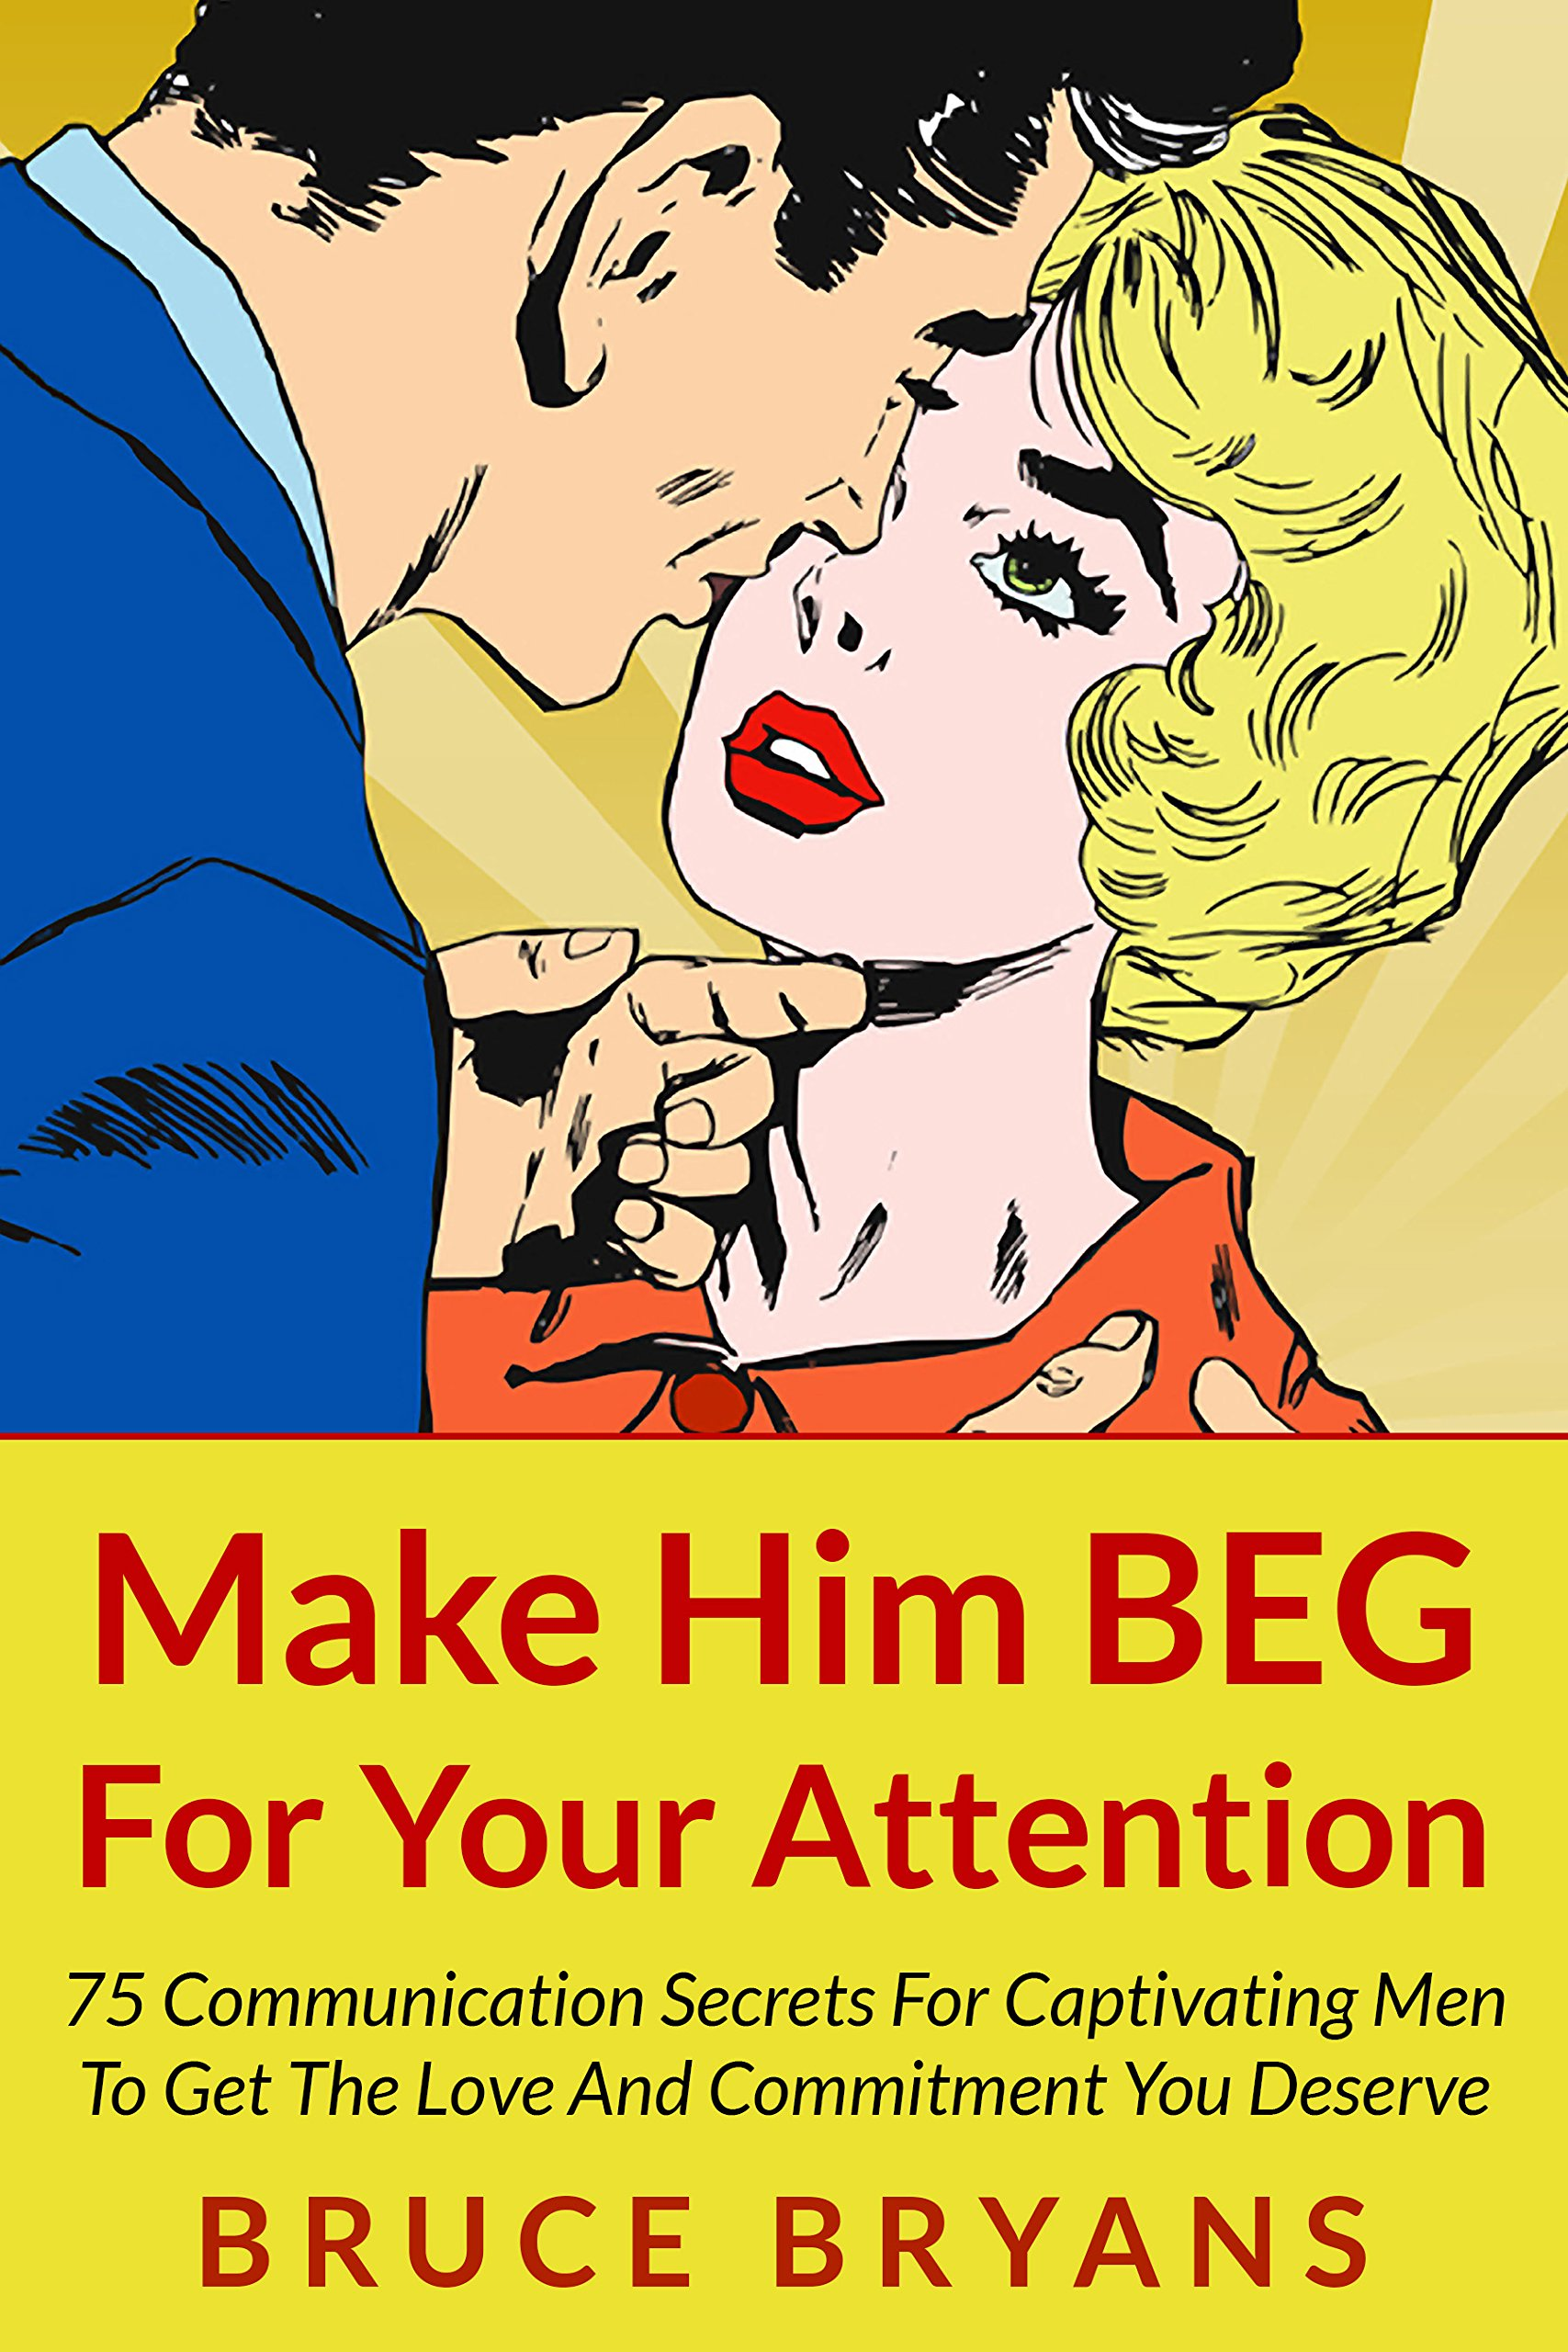 Make Him BEG For Your Attention  75 Communication Secrets For Captivating Men To Get The Love And Commitment You Deserve  English Edition